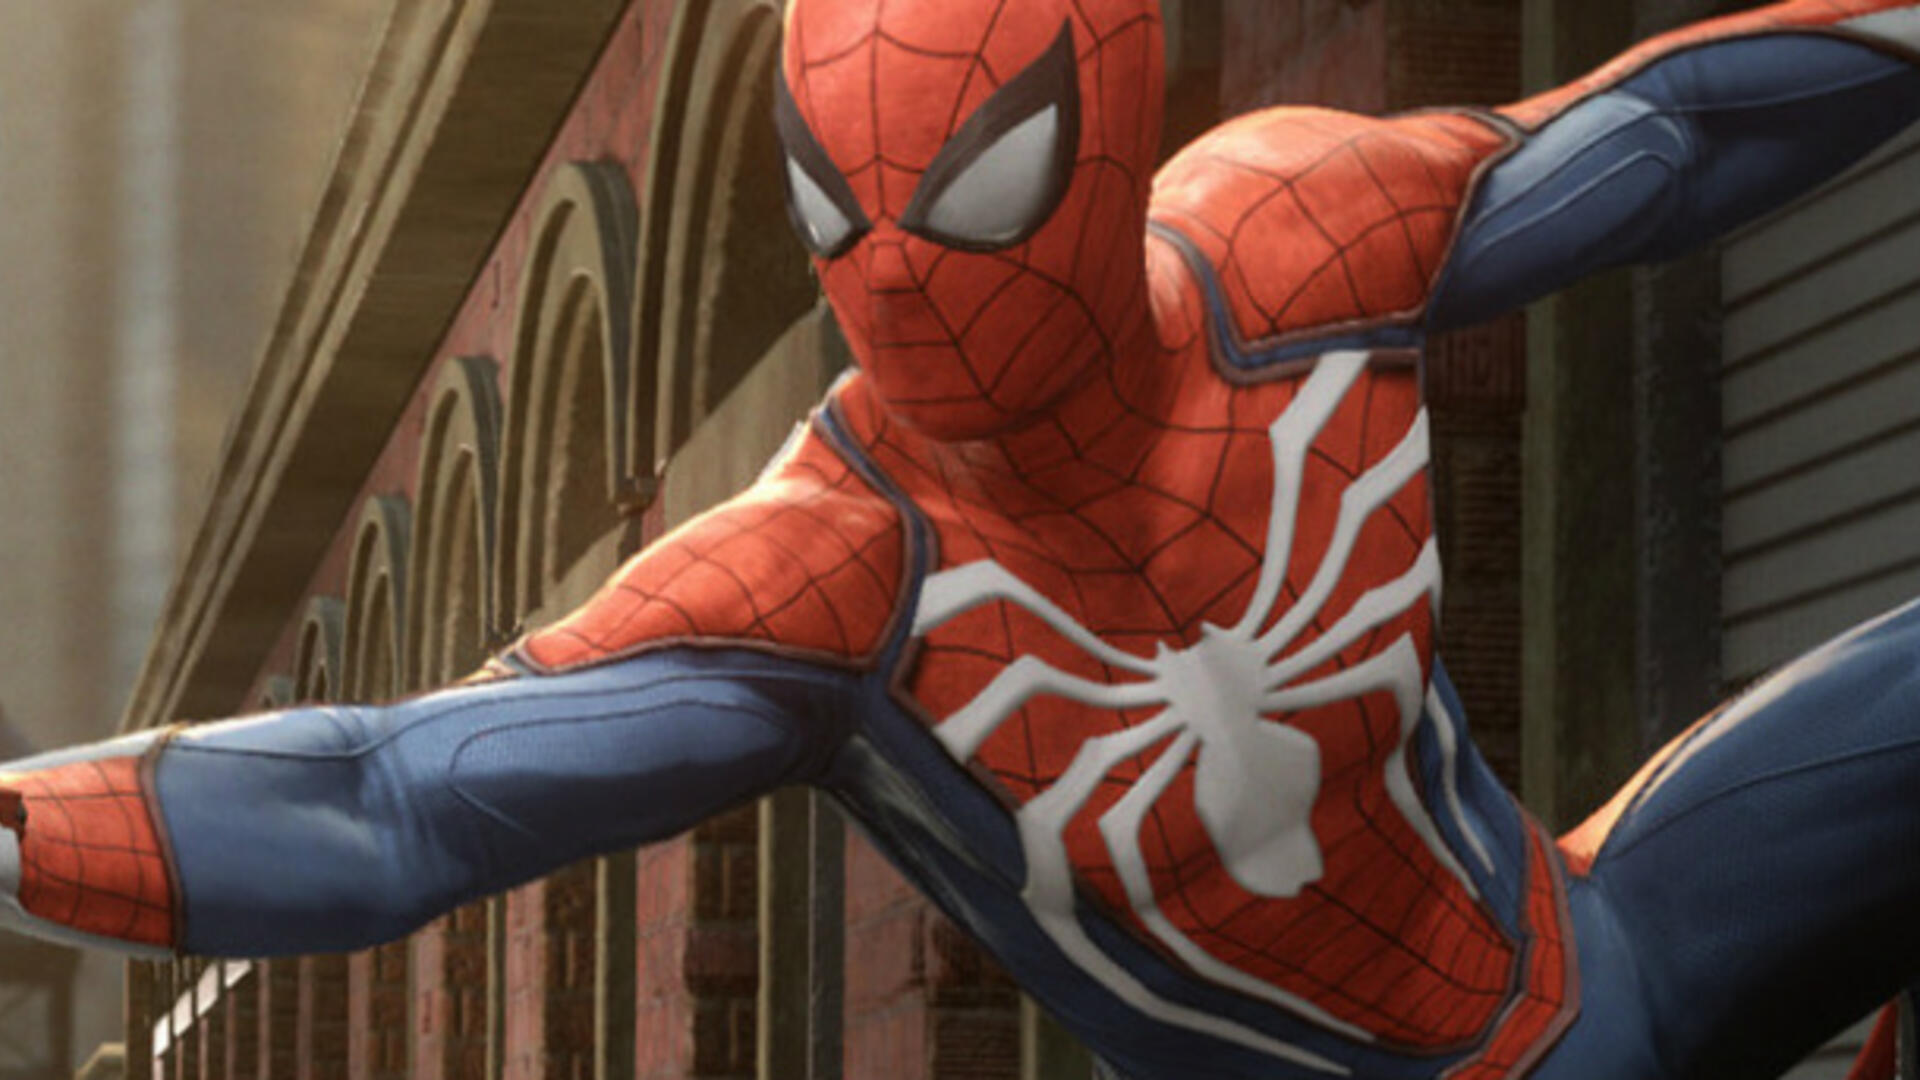 Spider-Man From Insomniac Coming to PS4 This Year